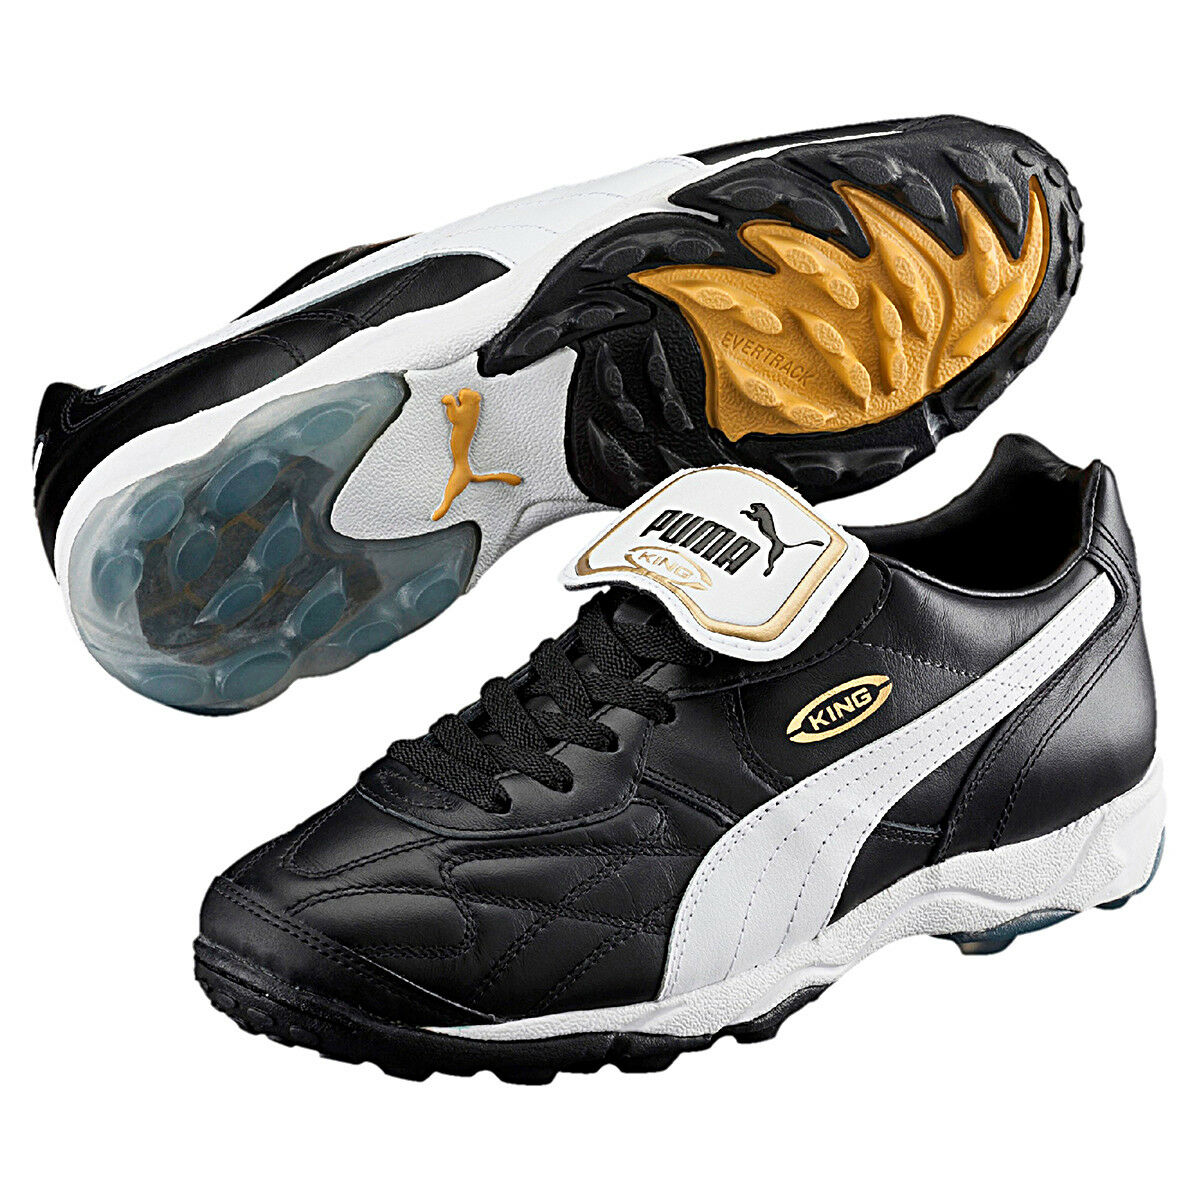 Puma Football Boots King All-Round Tt Leather 170119 01 Football Indoor Men's